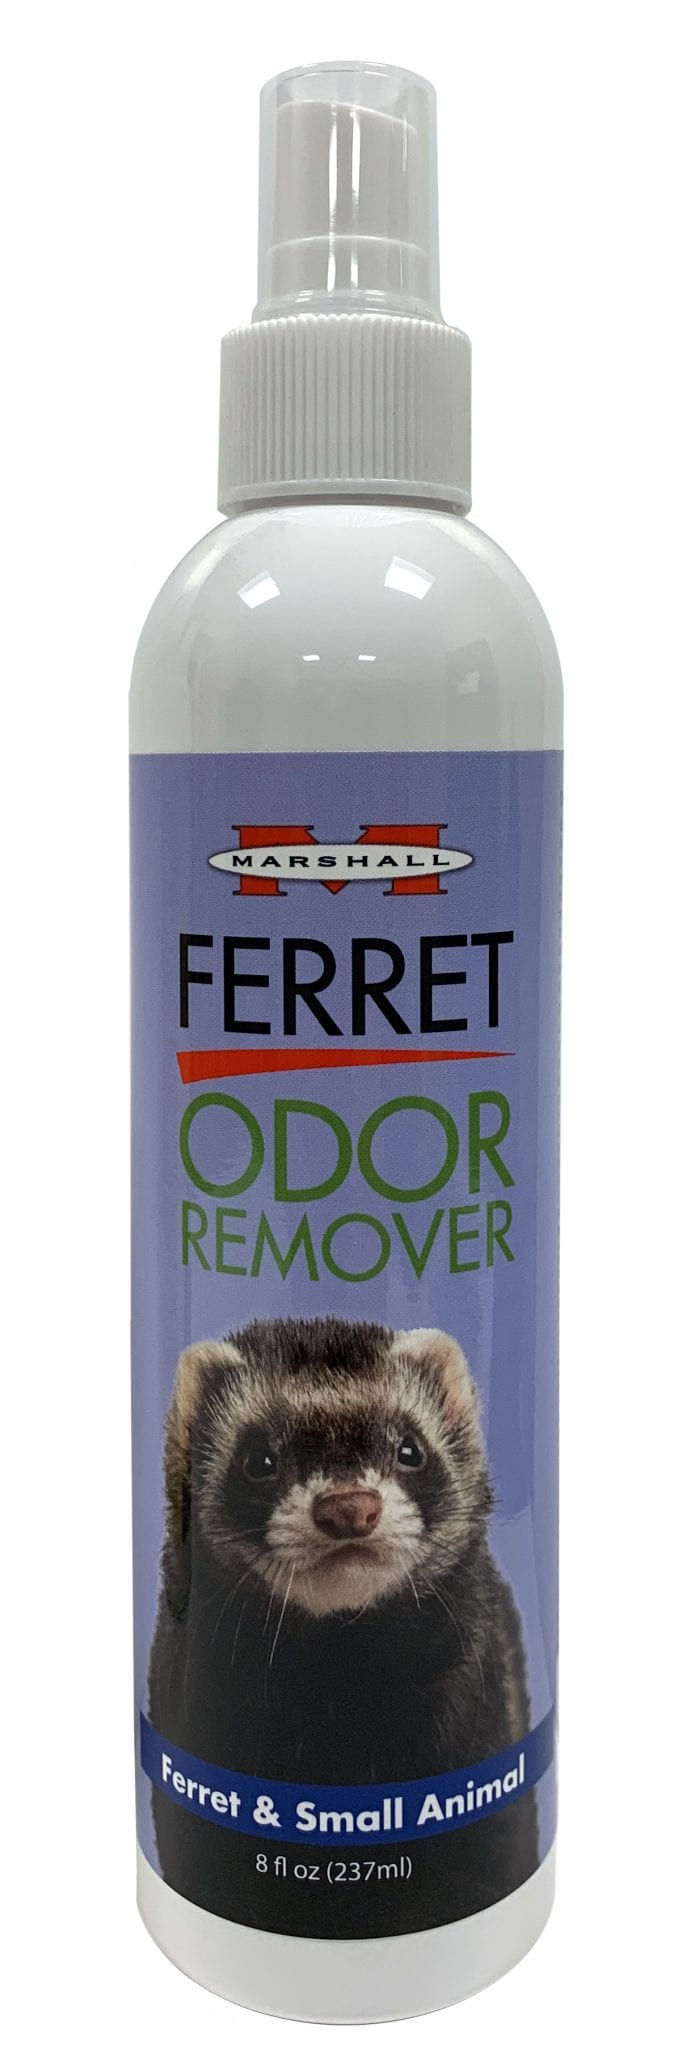 Ferret & Small Animal Odor Remover, 8 oz.